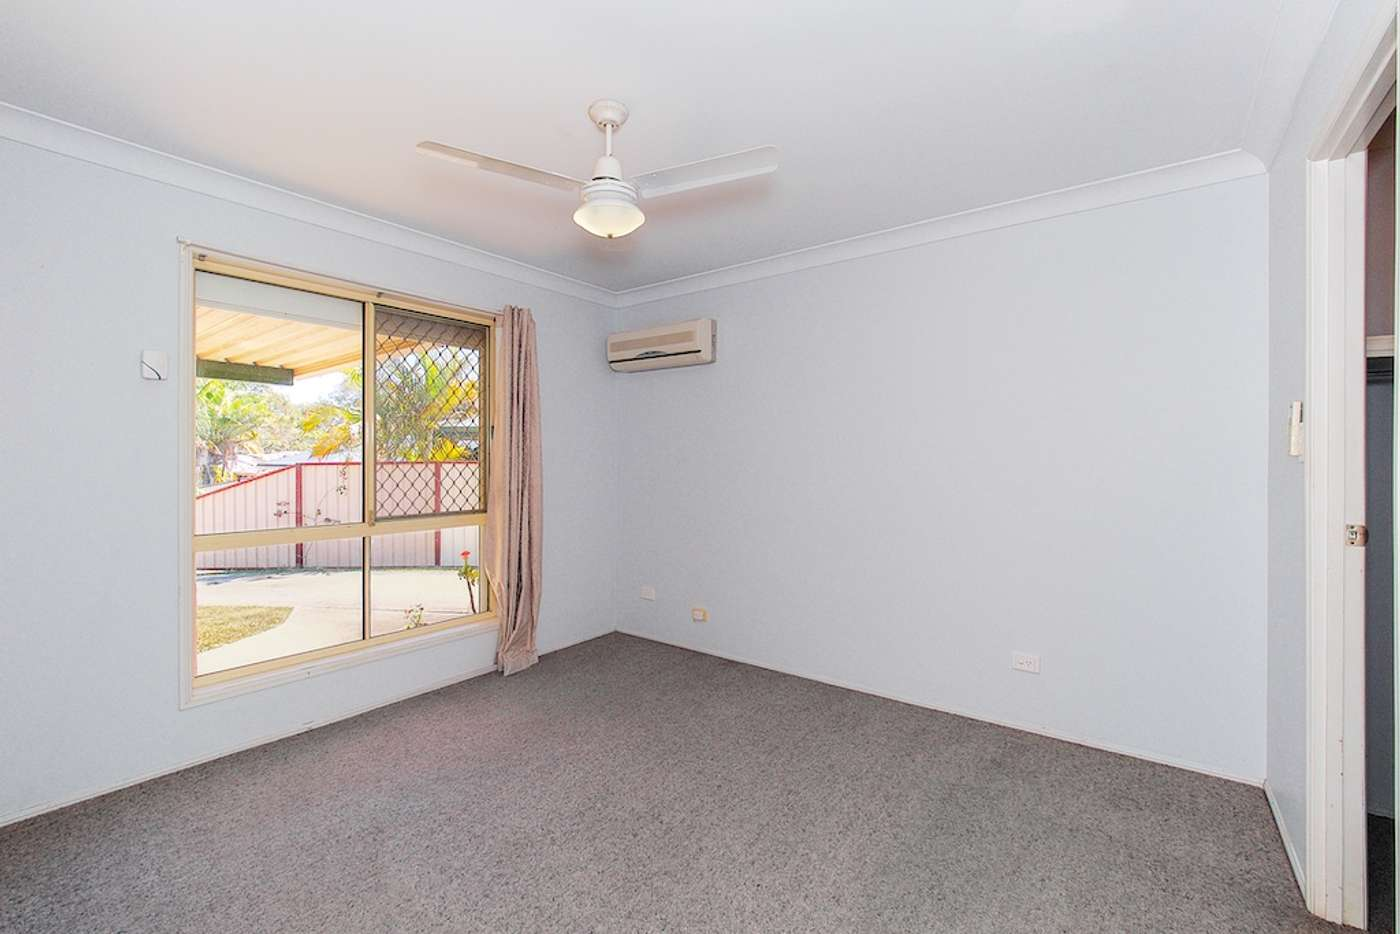 Sixth view of Homely house listing, 11 Robinson Court, Berrinba QLD 4117